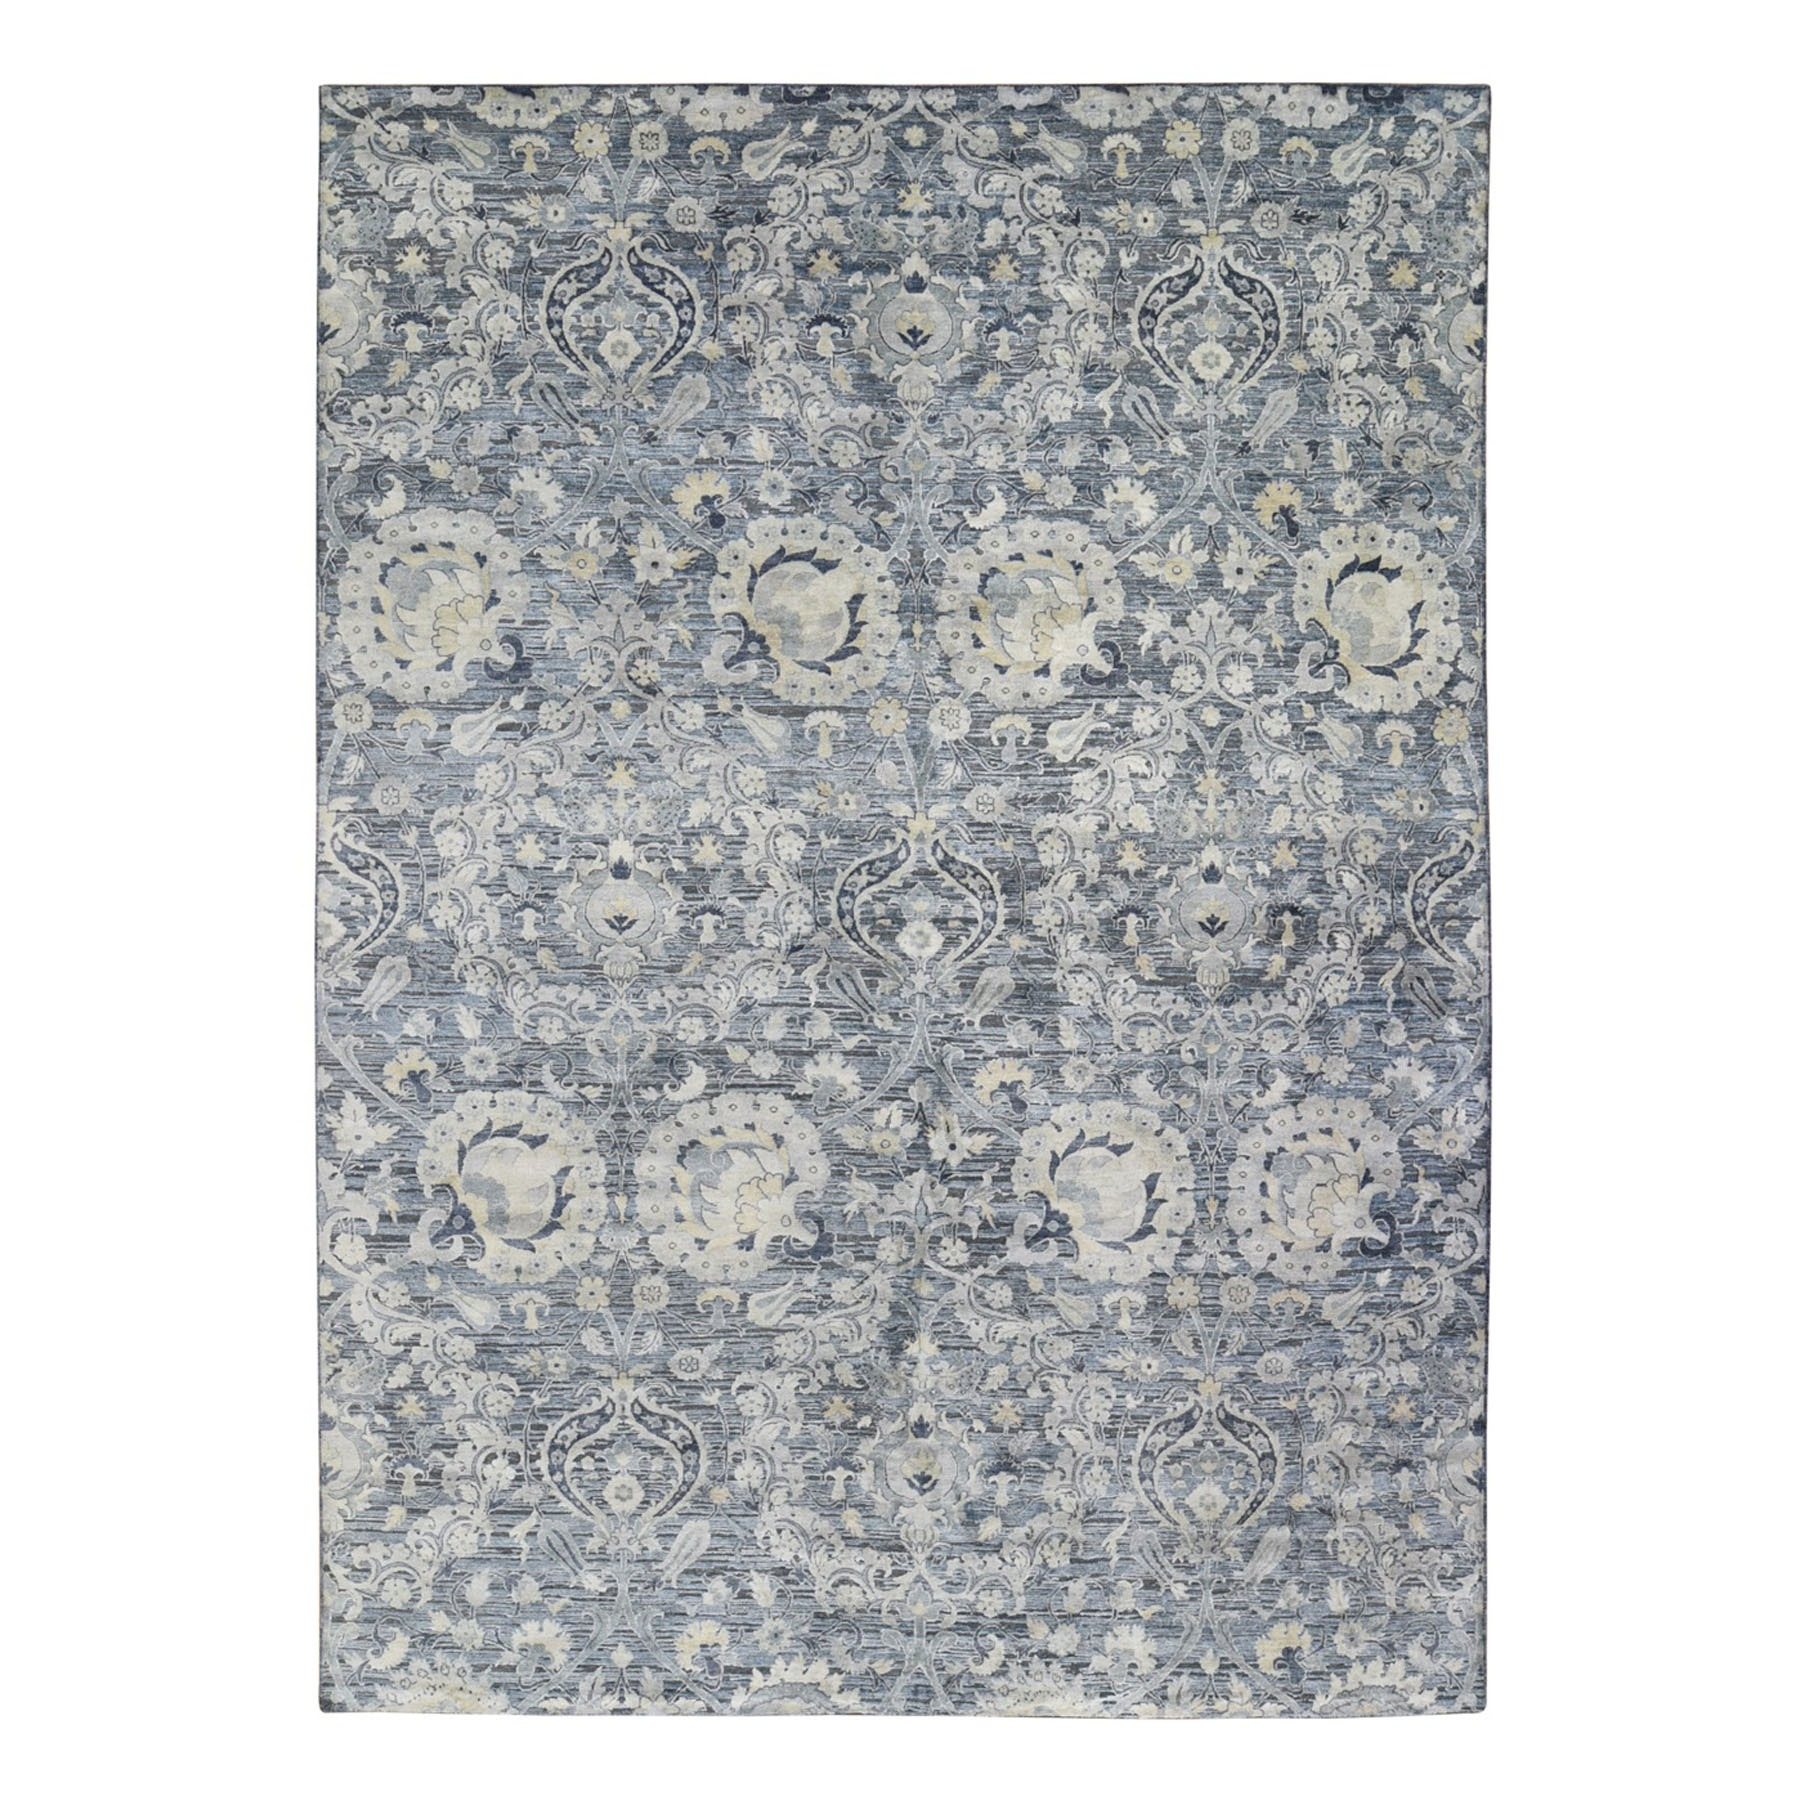 Wool and Real Silk Collection Hand Knotted Grey Rug No: 1119890